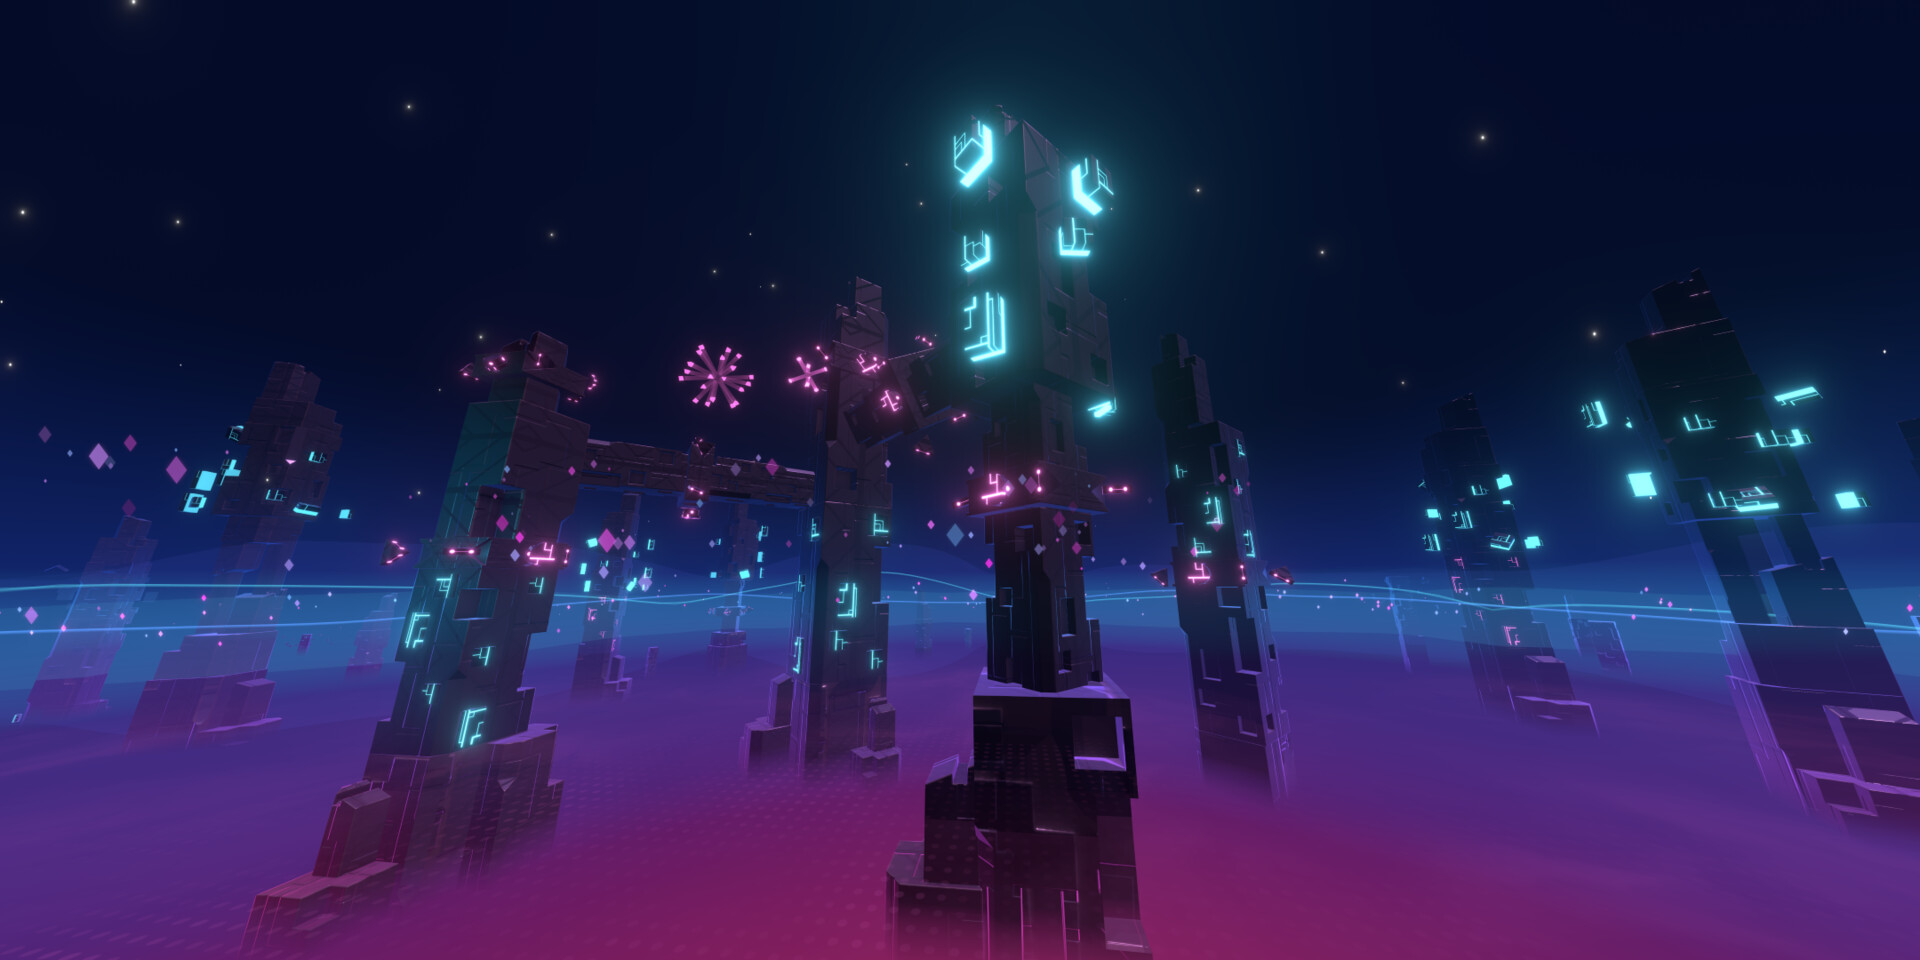 Environment pillars which animate and interact based on the music